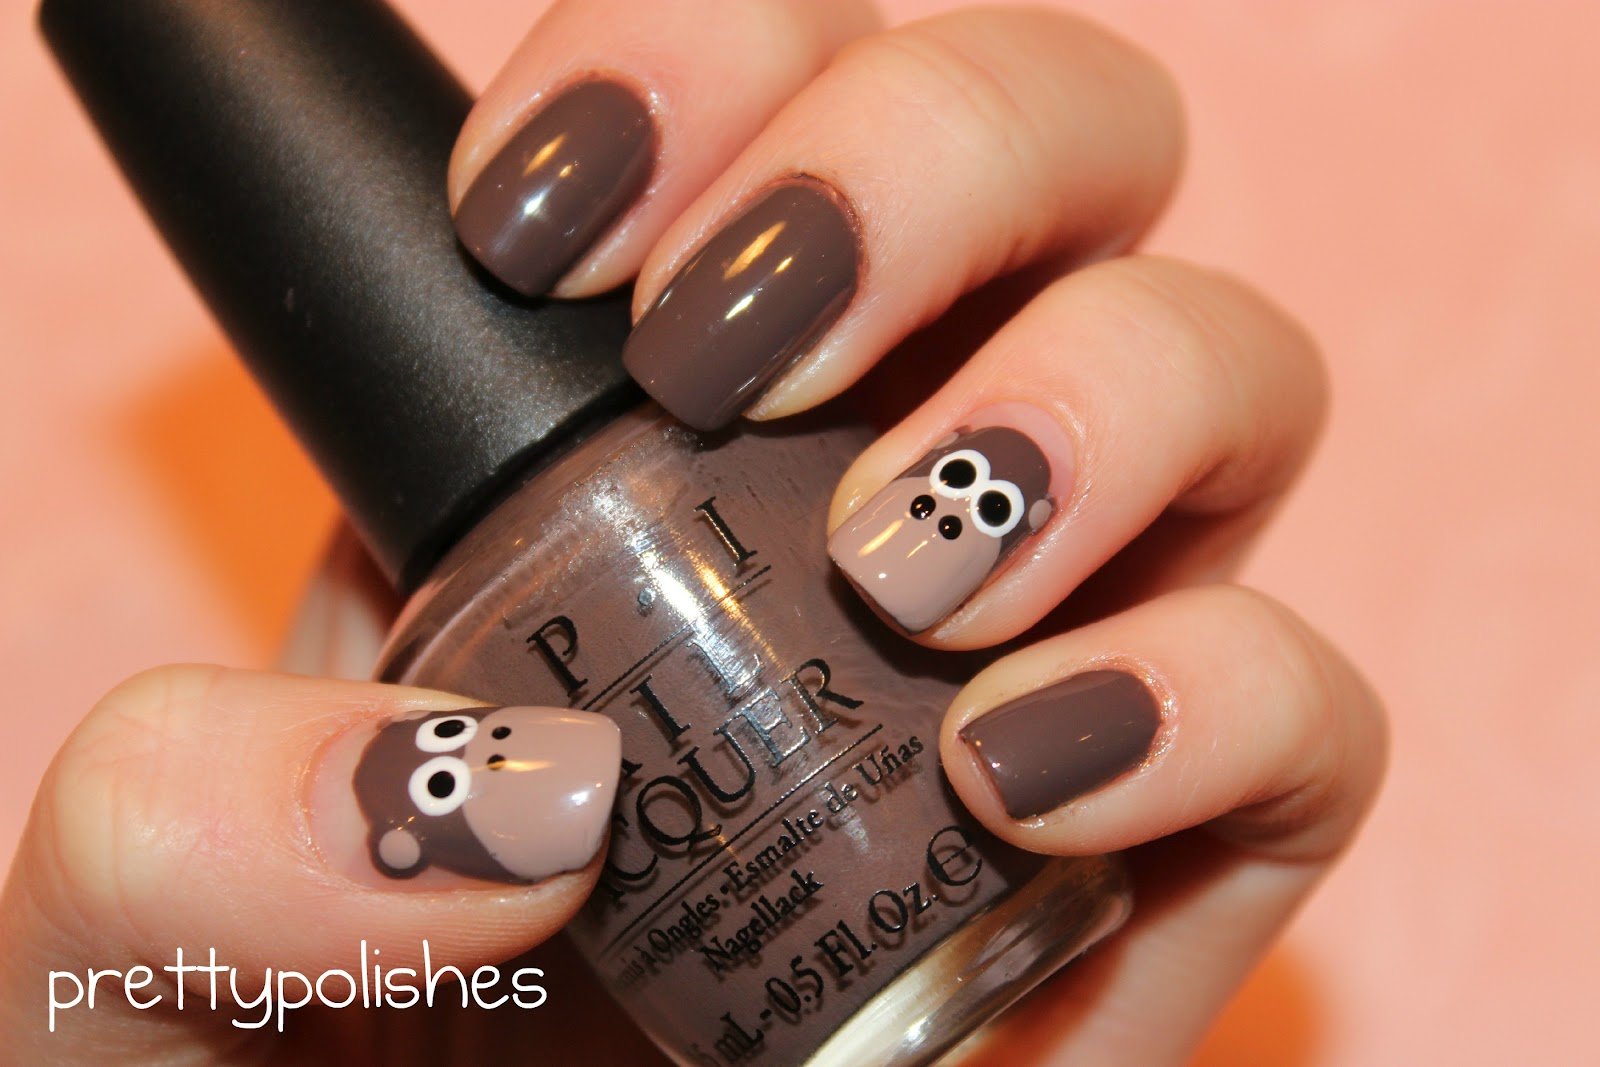 prettypolishes: Monkey Nails!